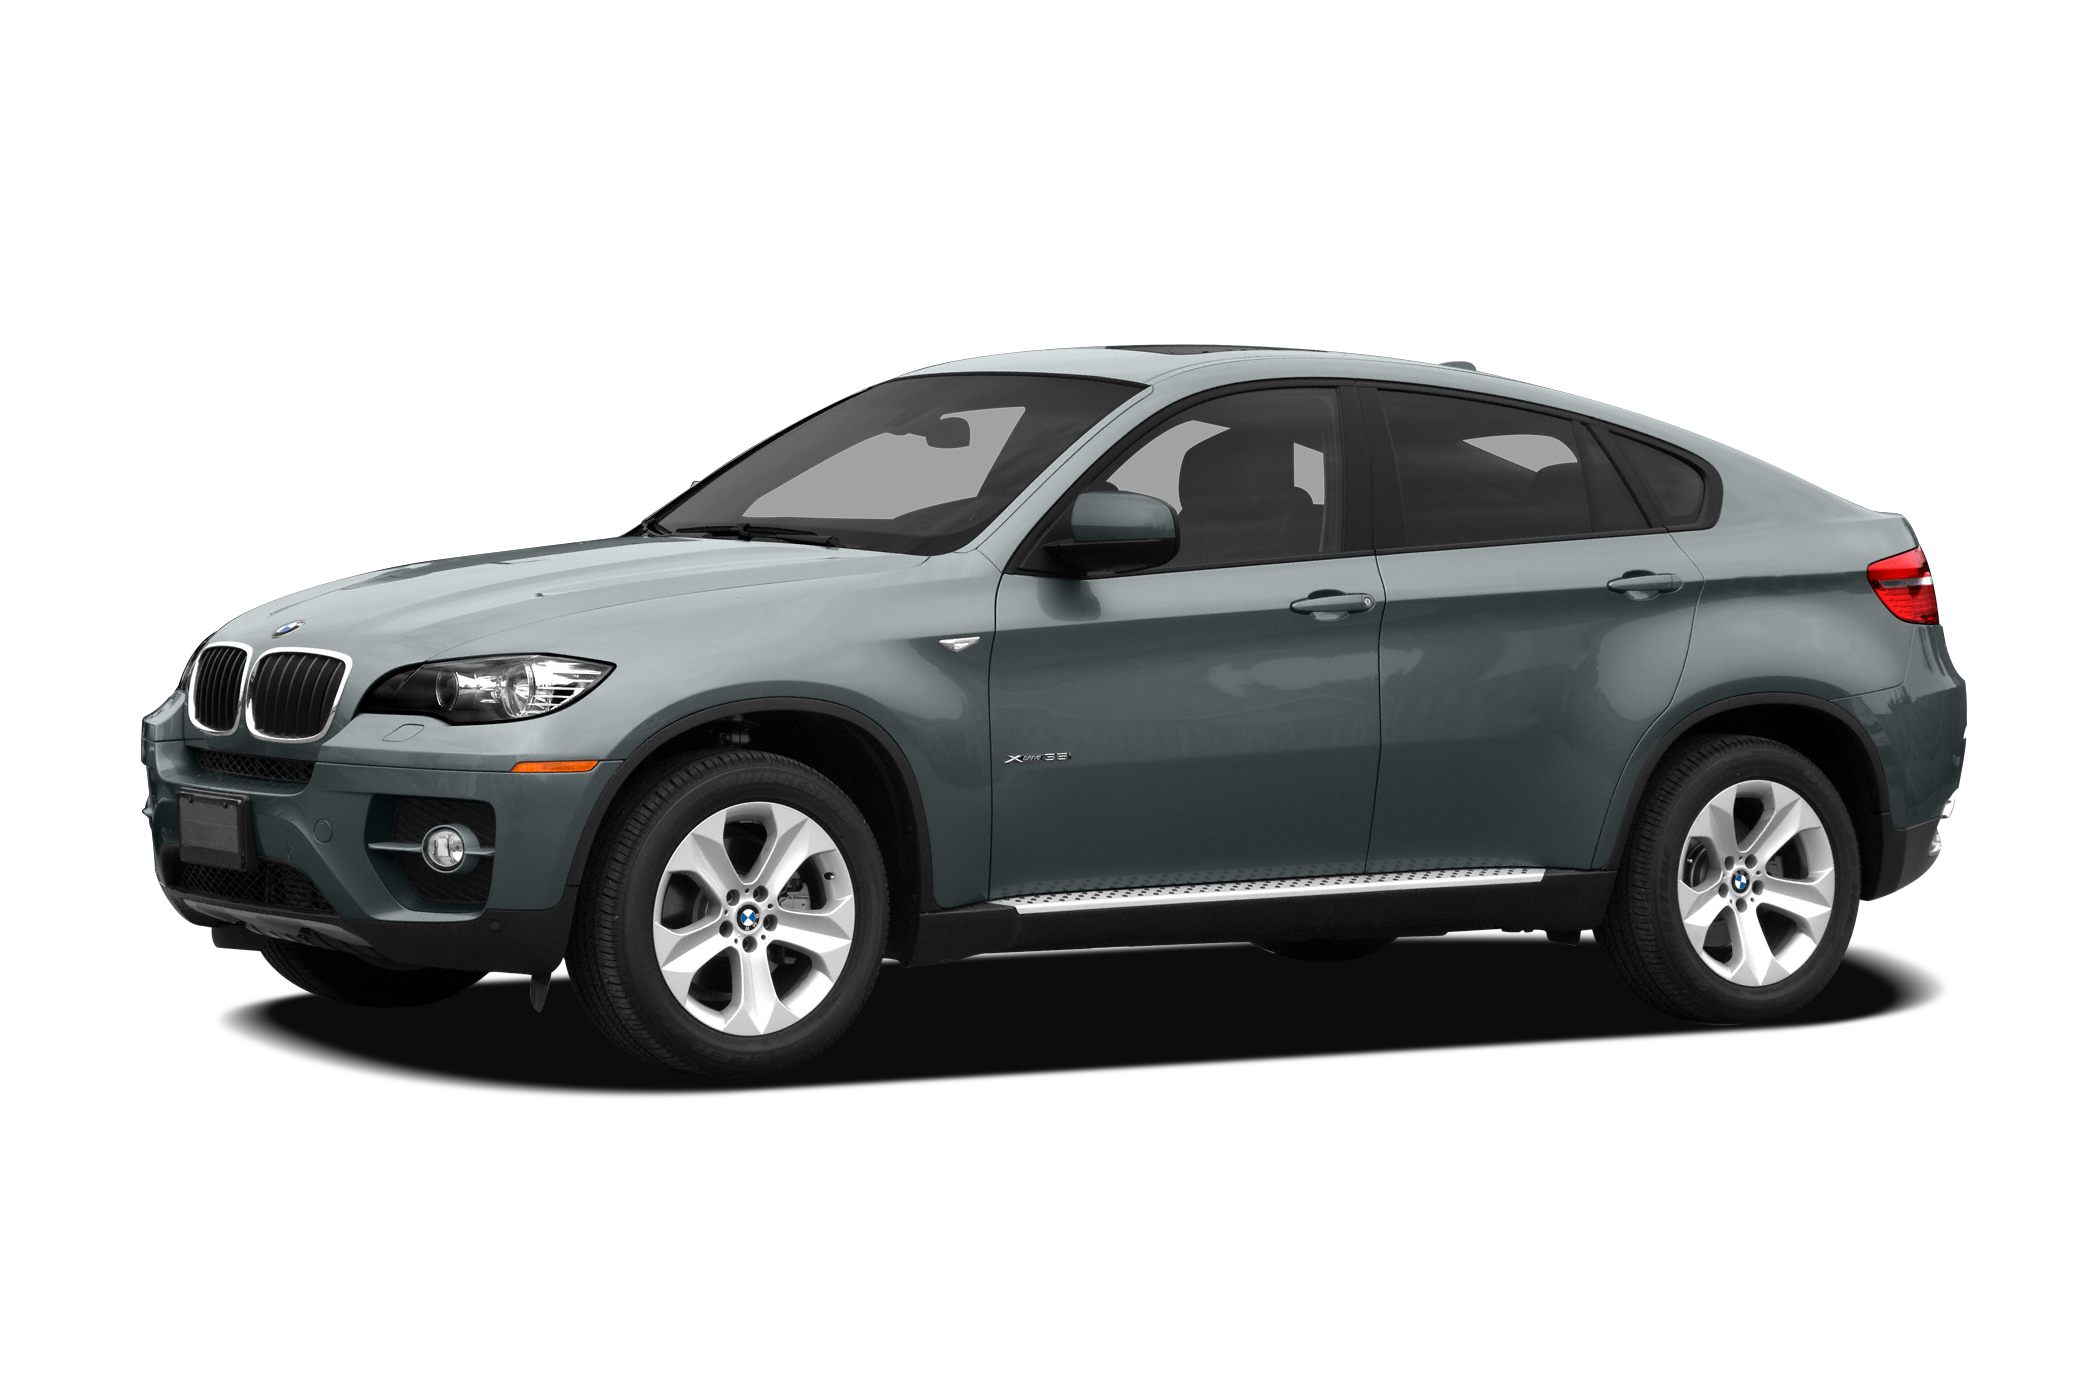 2010 BMW X6 XDrive50i SUV for sale in Los Angeles for $34,981 with 61,377 miles.